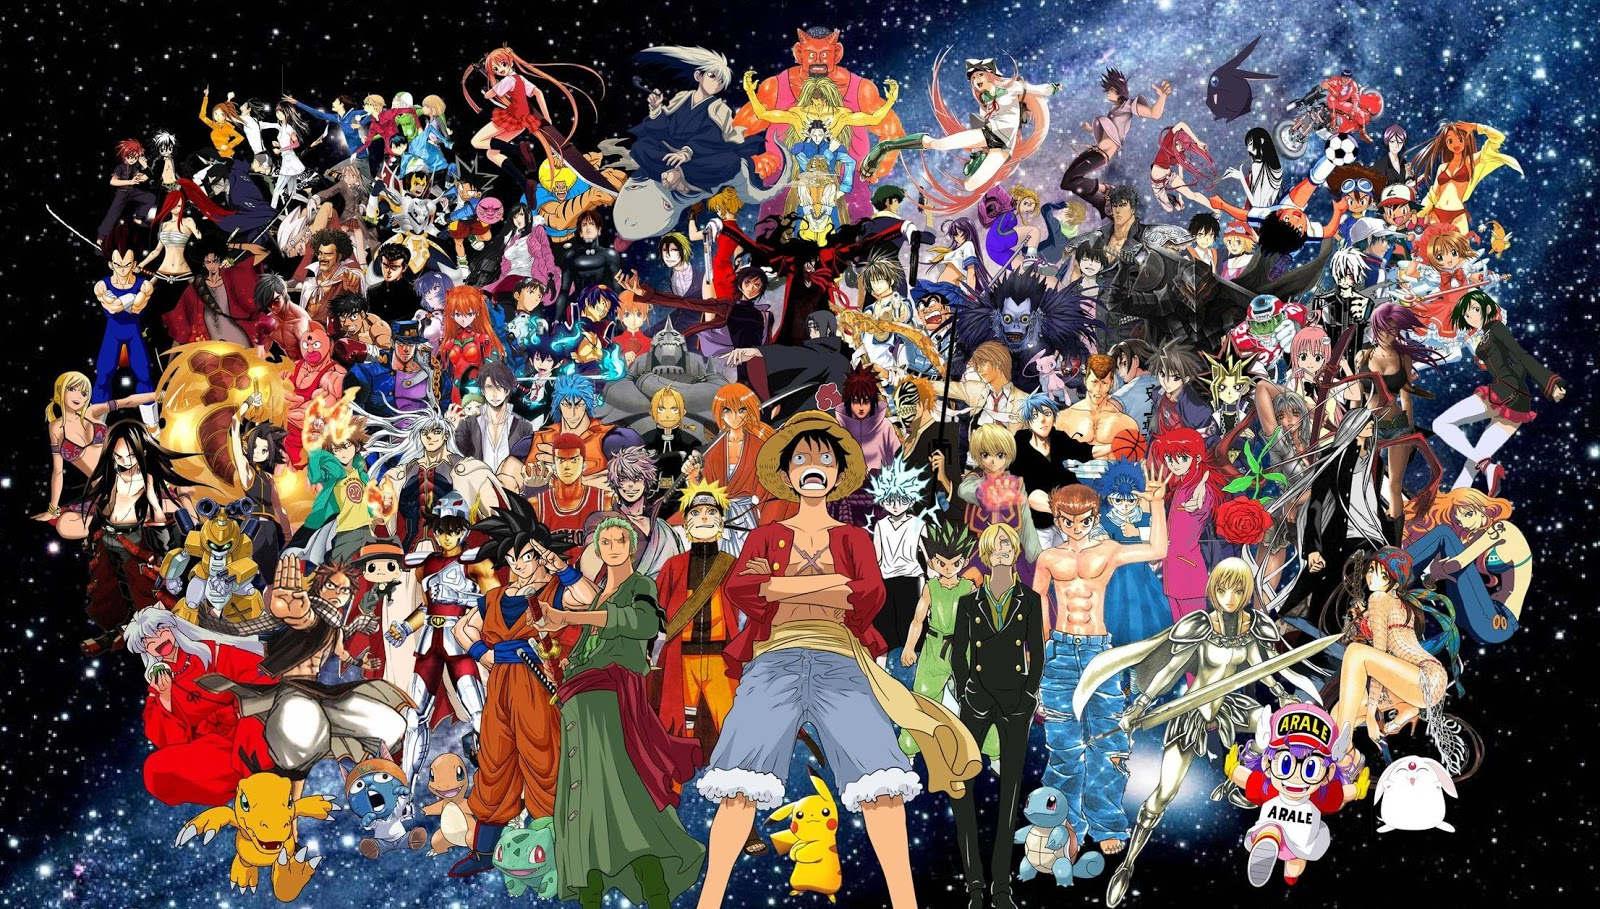 42 all anime characters hd wallpaper on wallpapersafari - Anime picture hd ...